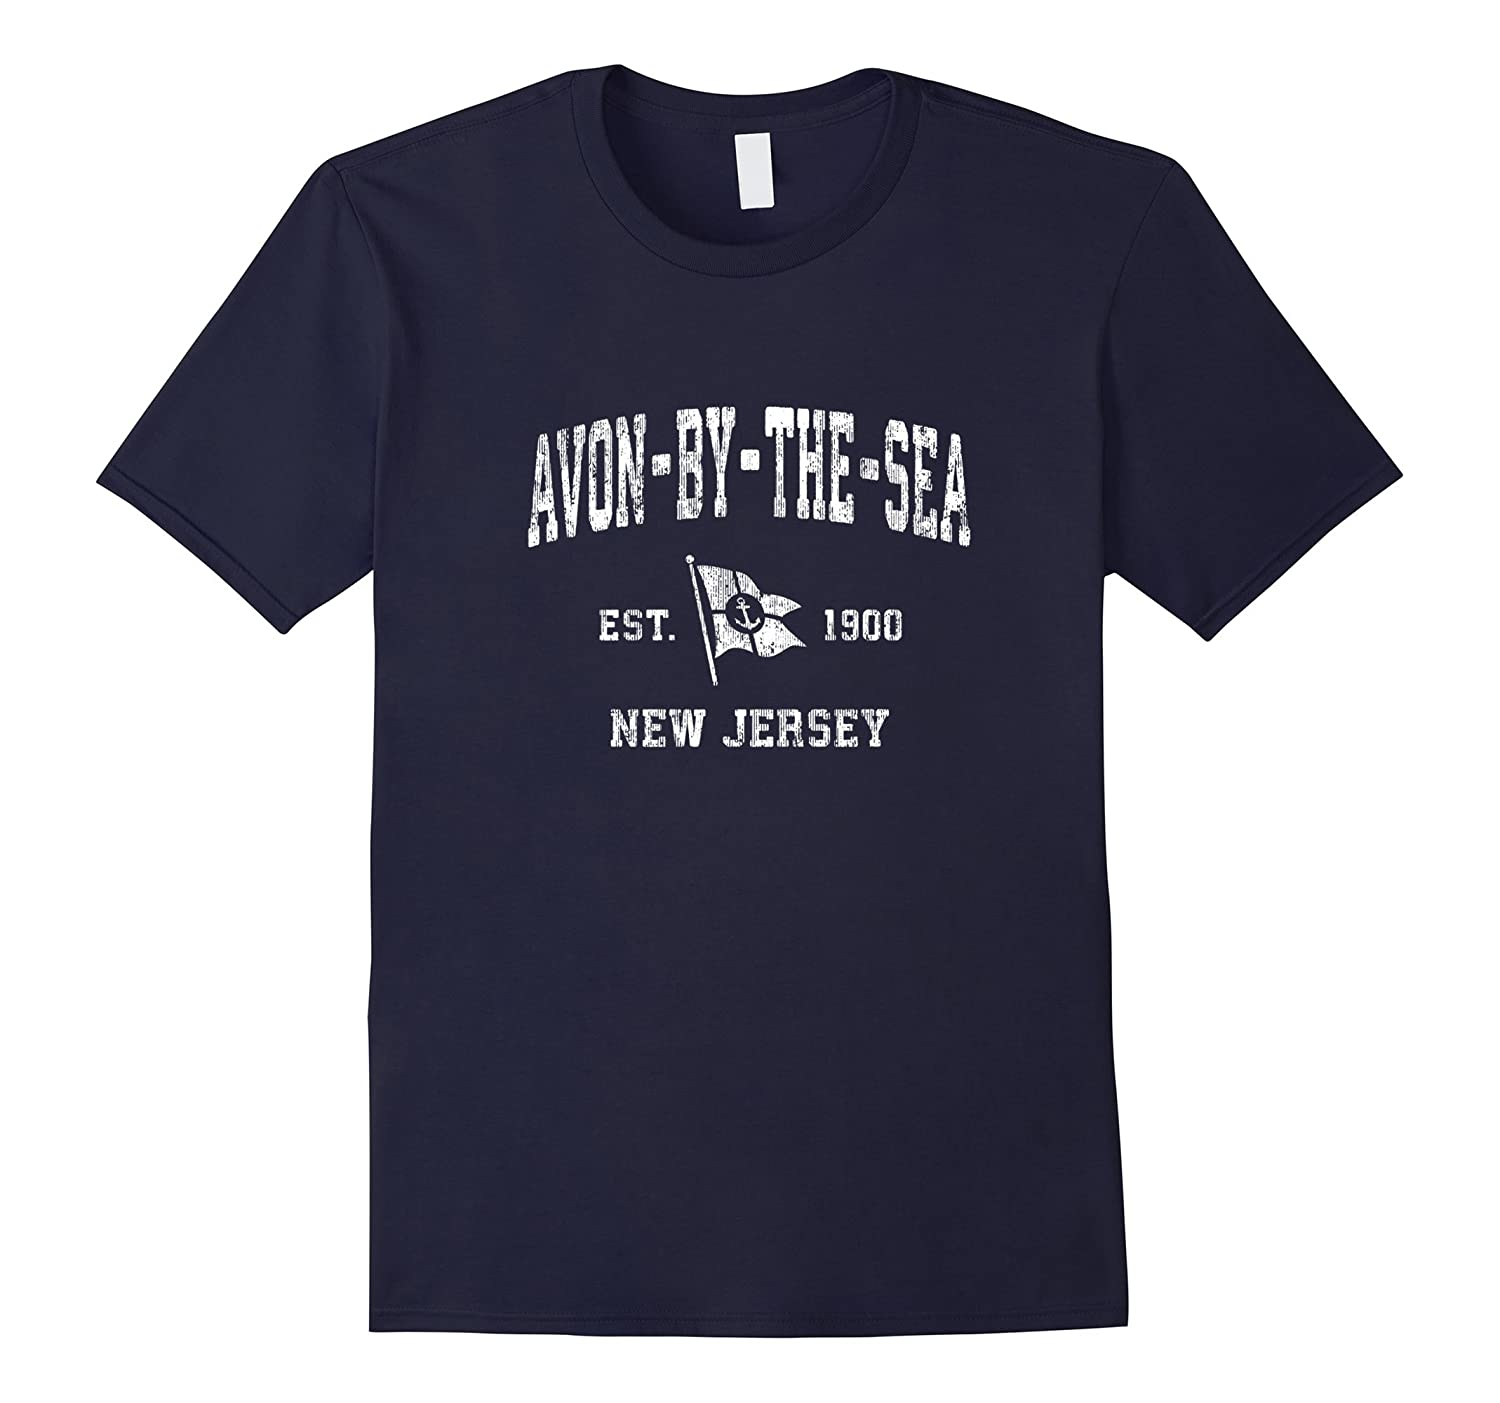 Avon By The Sea New Jersey NJ Vintage Boat Anchor Flag Tee-FL